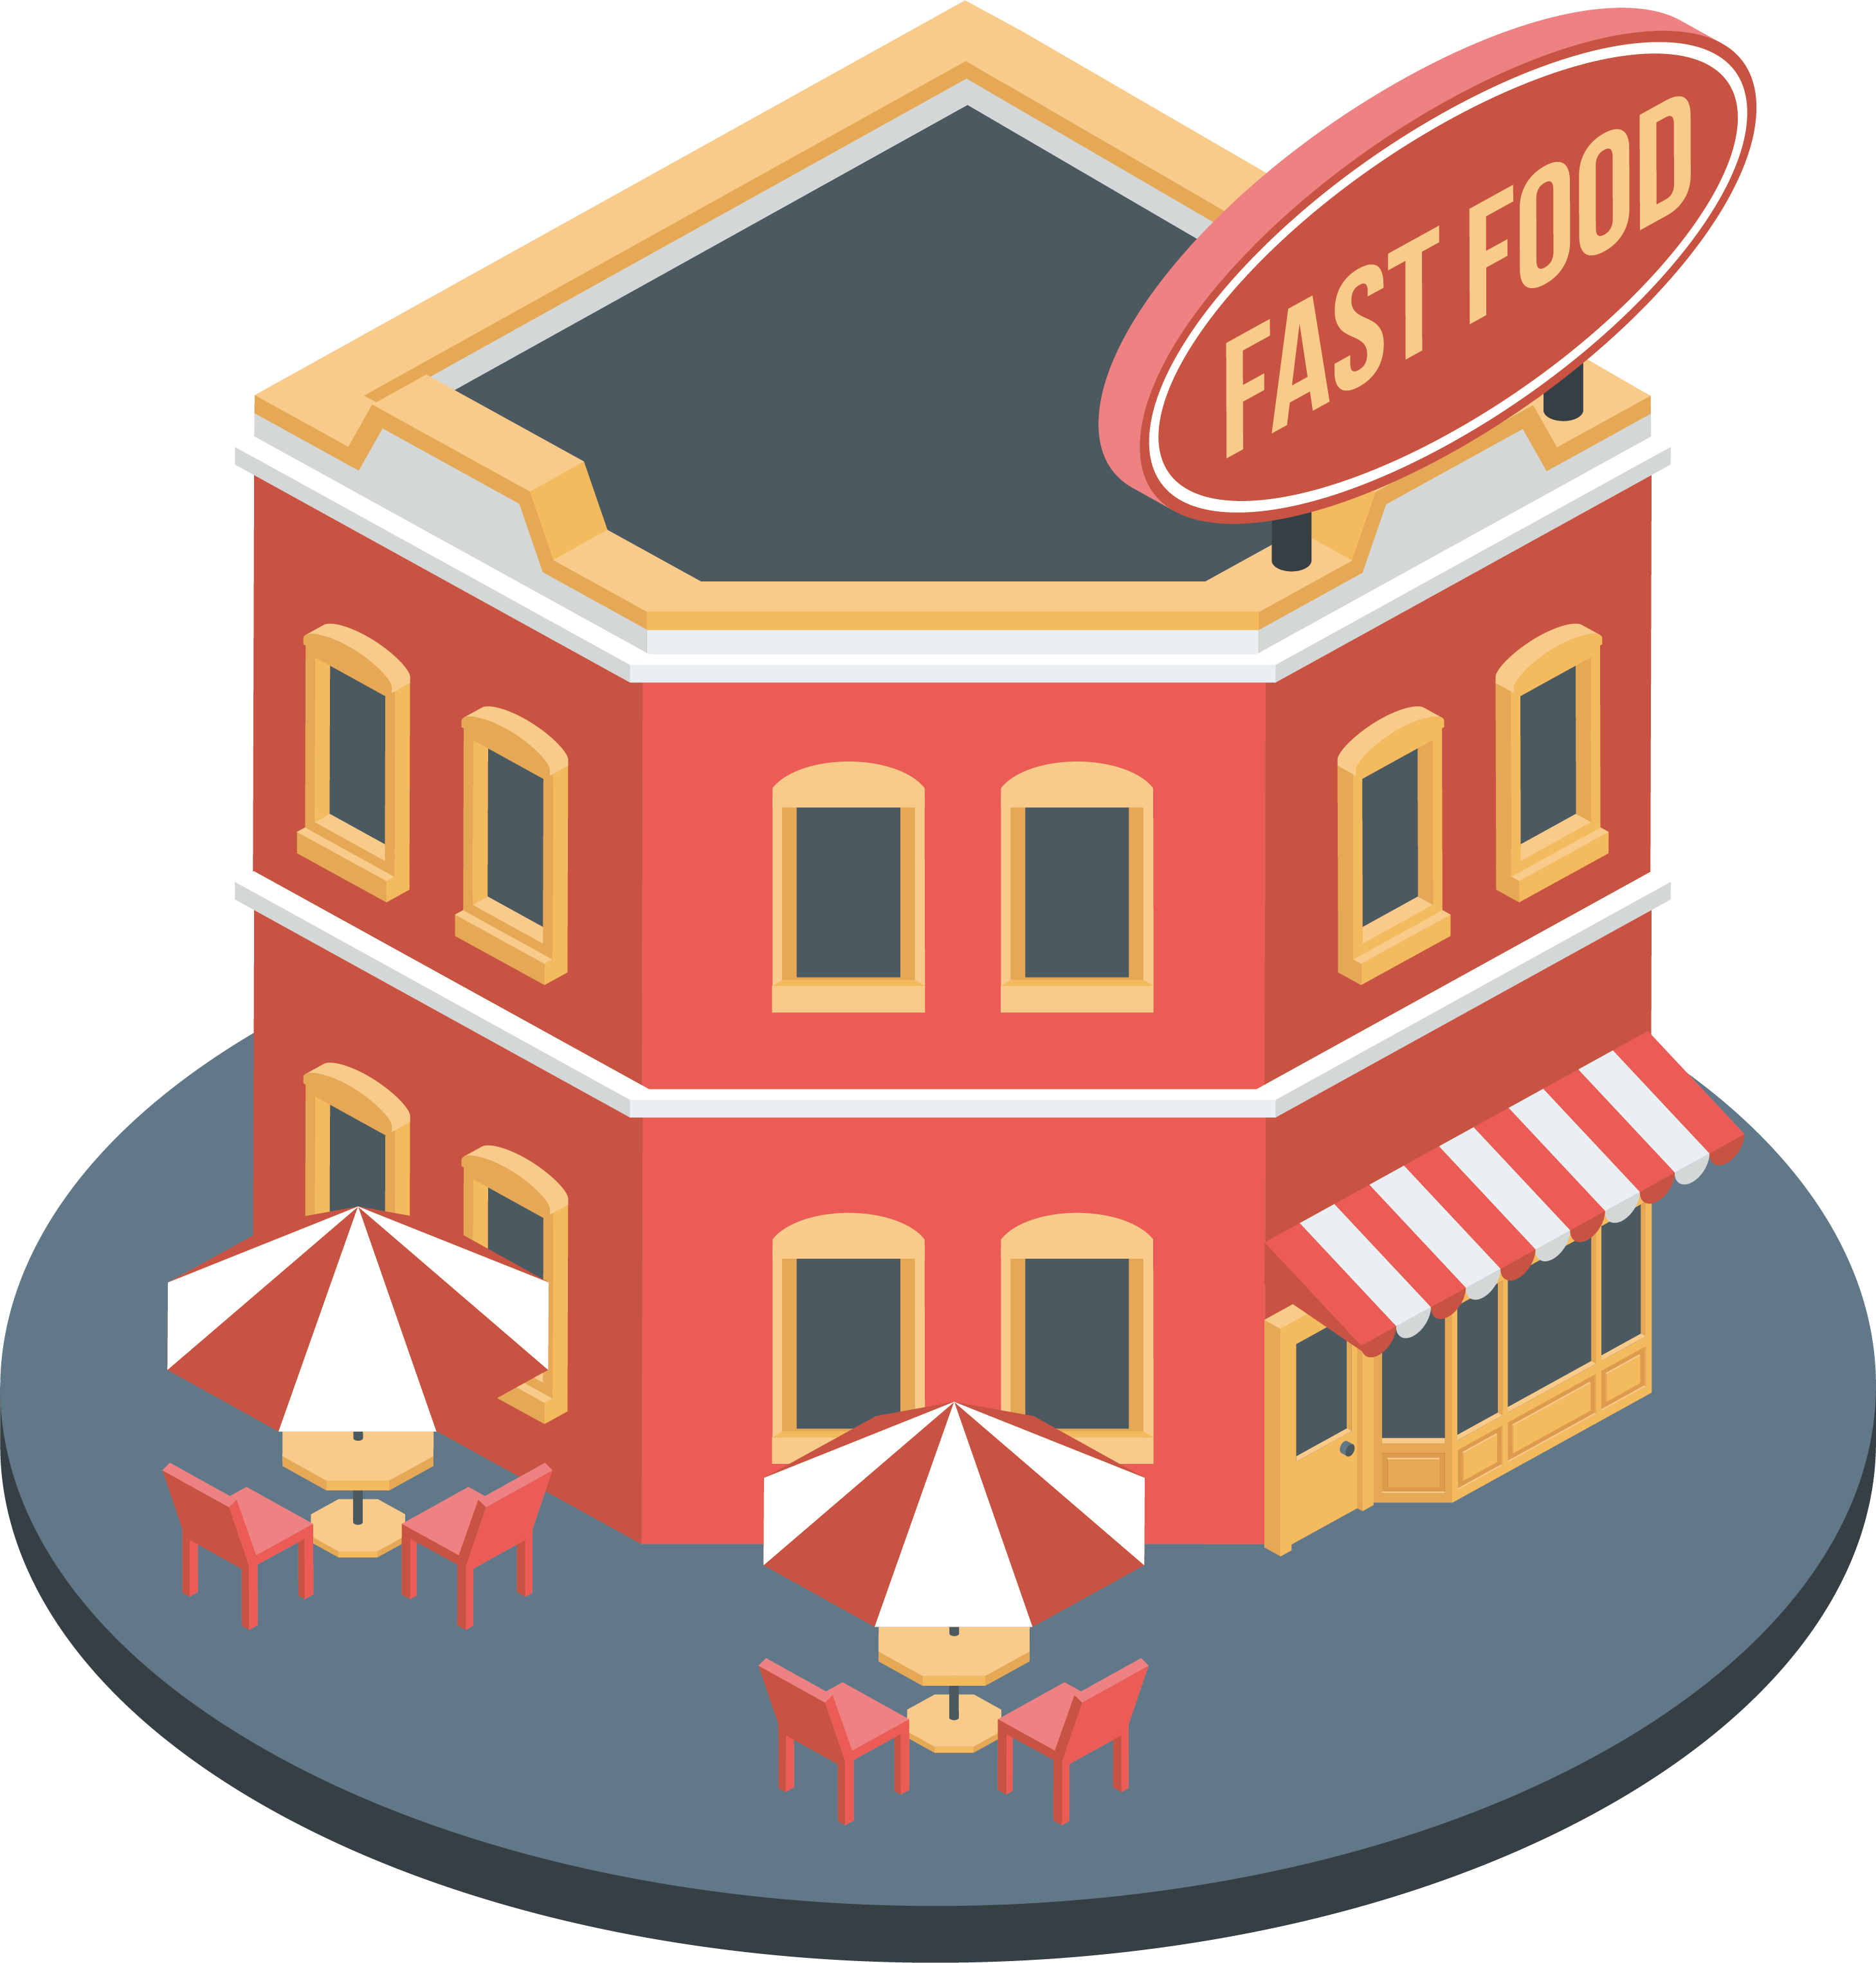 Clipart restaurant transparent. Fast food images gallery